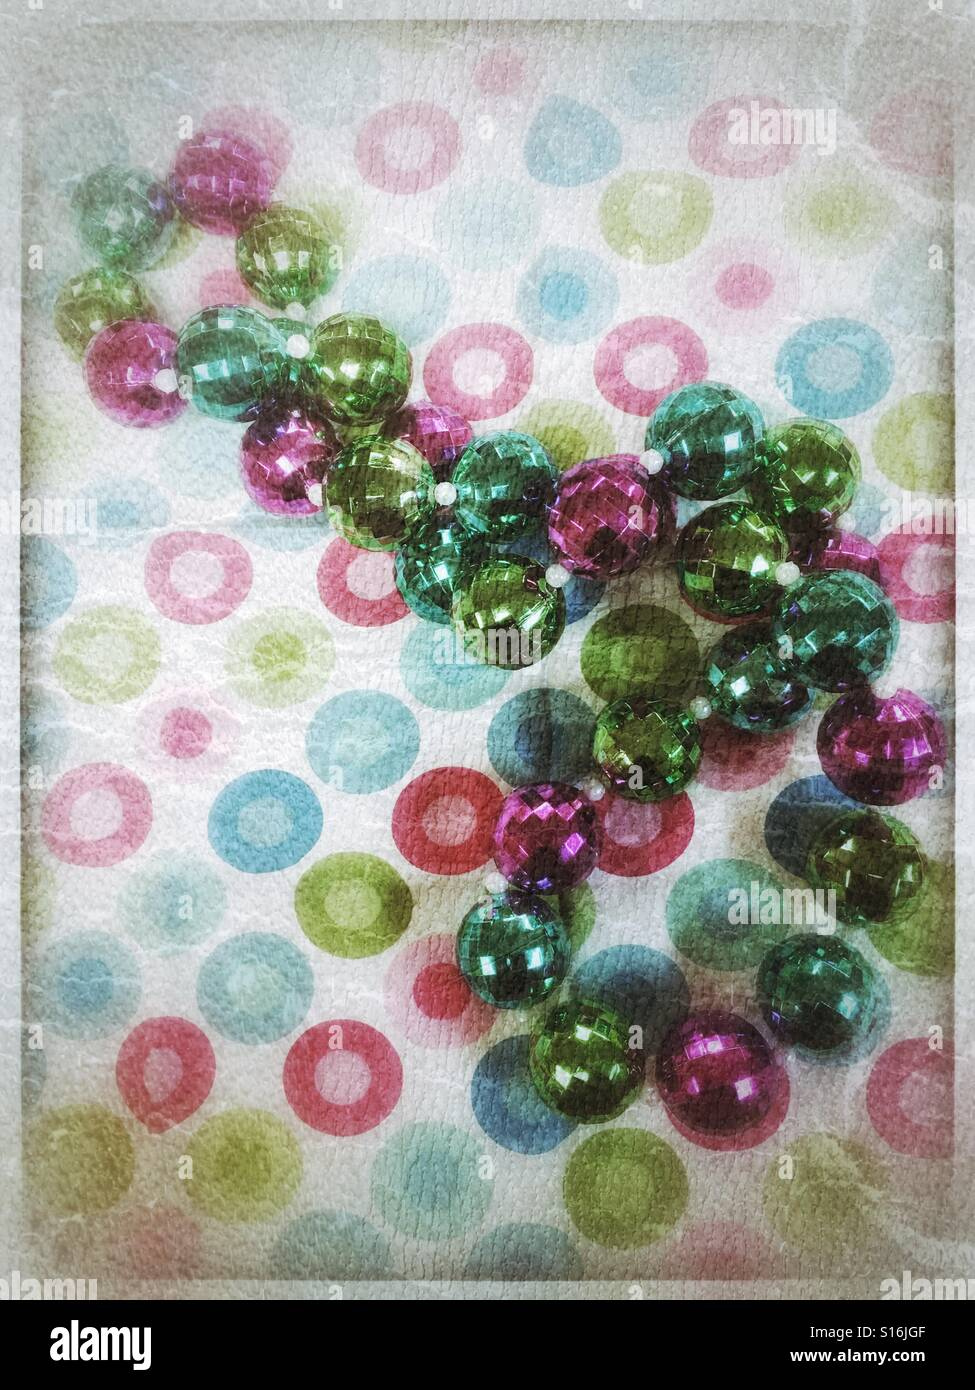 Beads on cloth - Stock Image